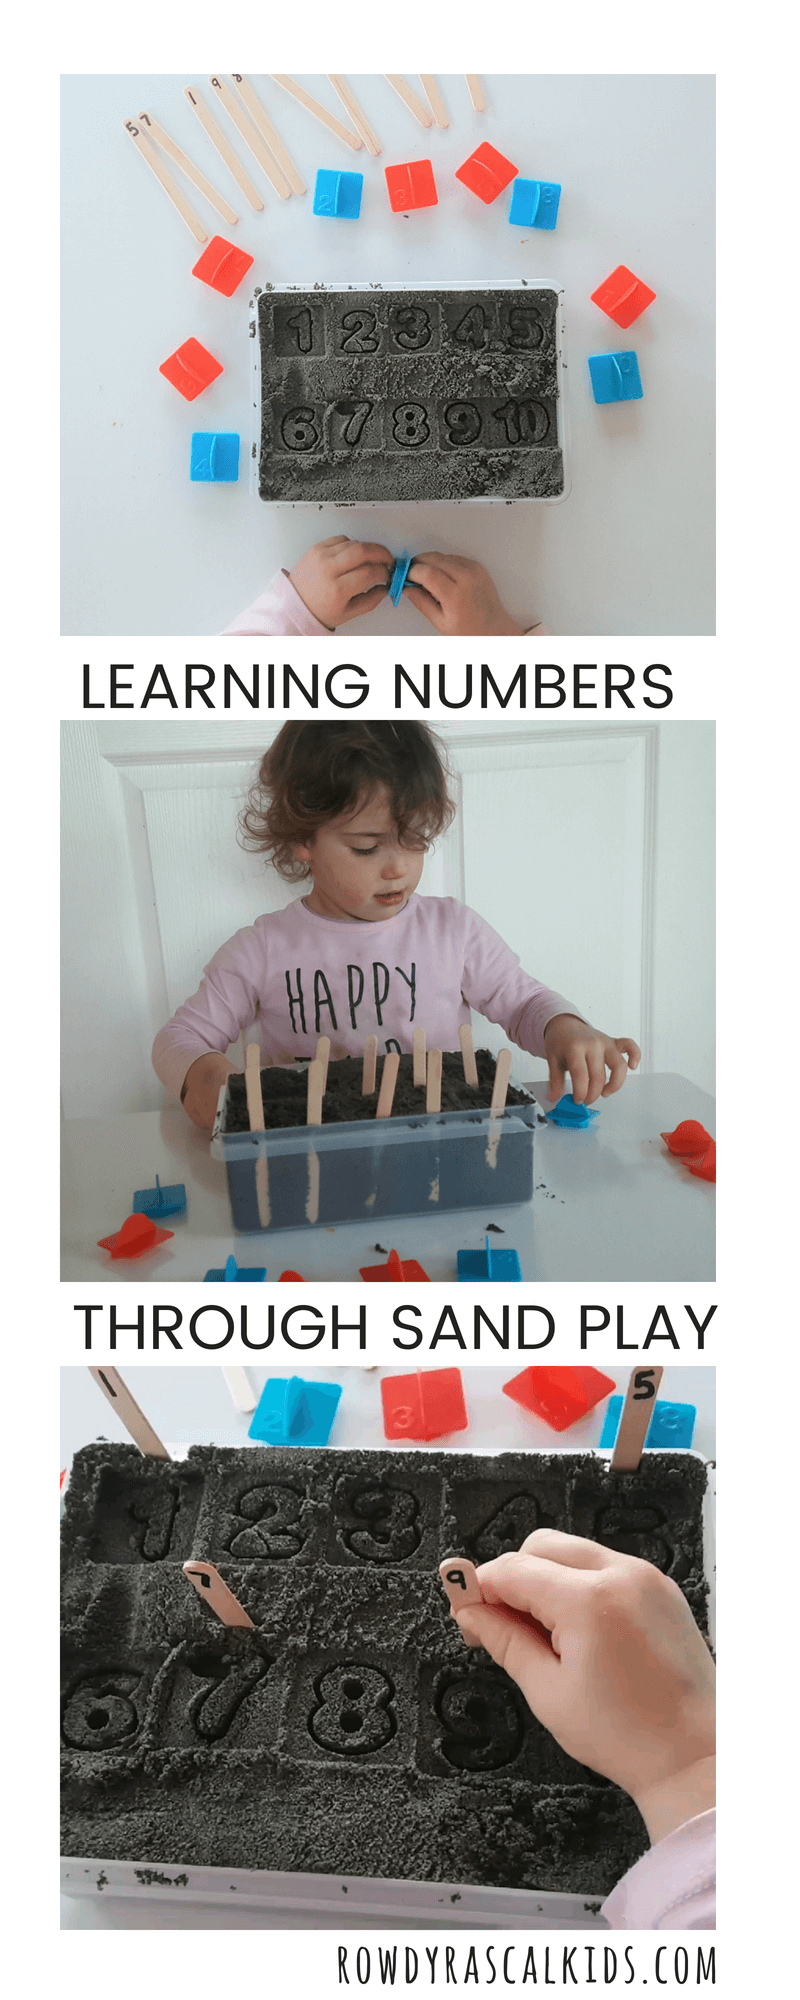 SAND PLAY NUMBER LEARNING.png